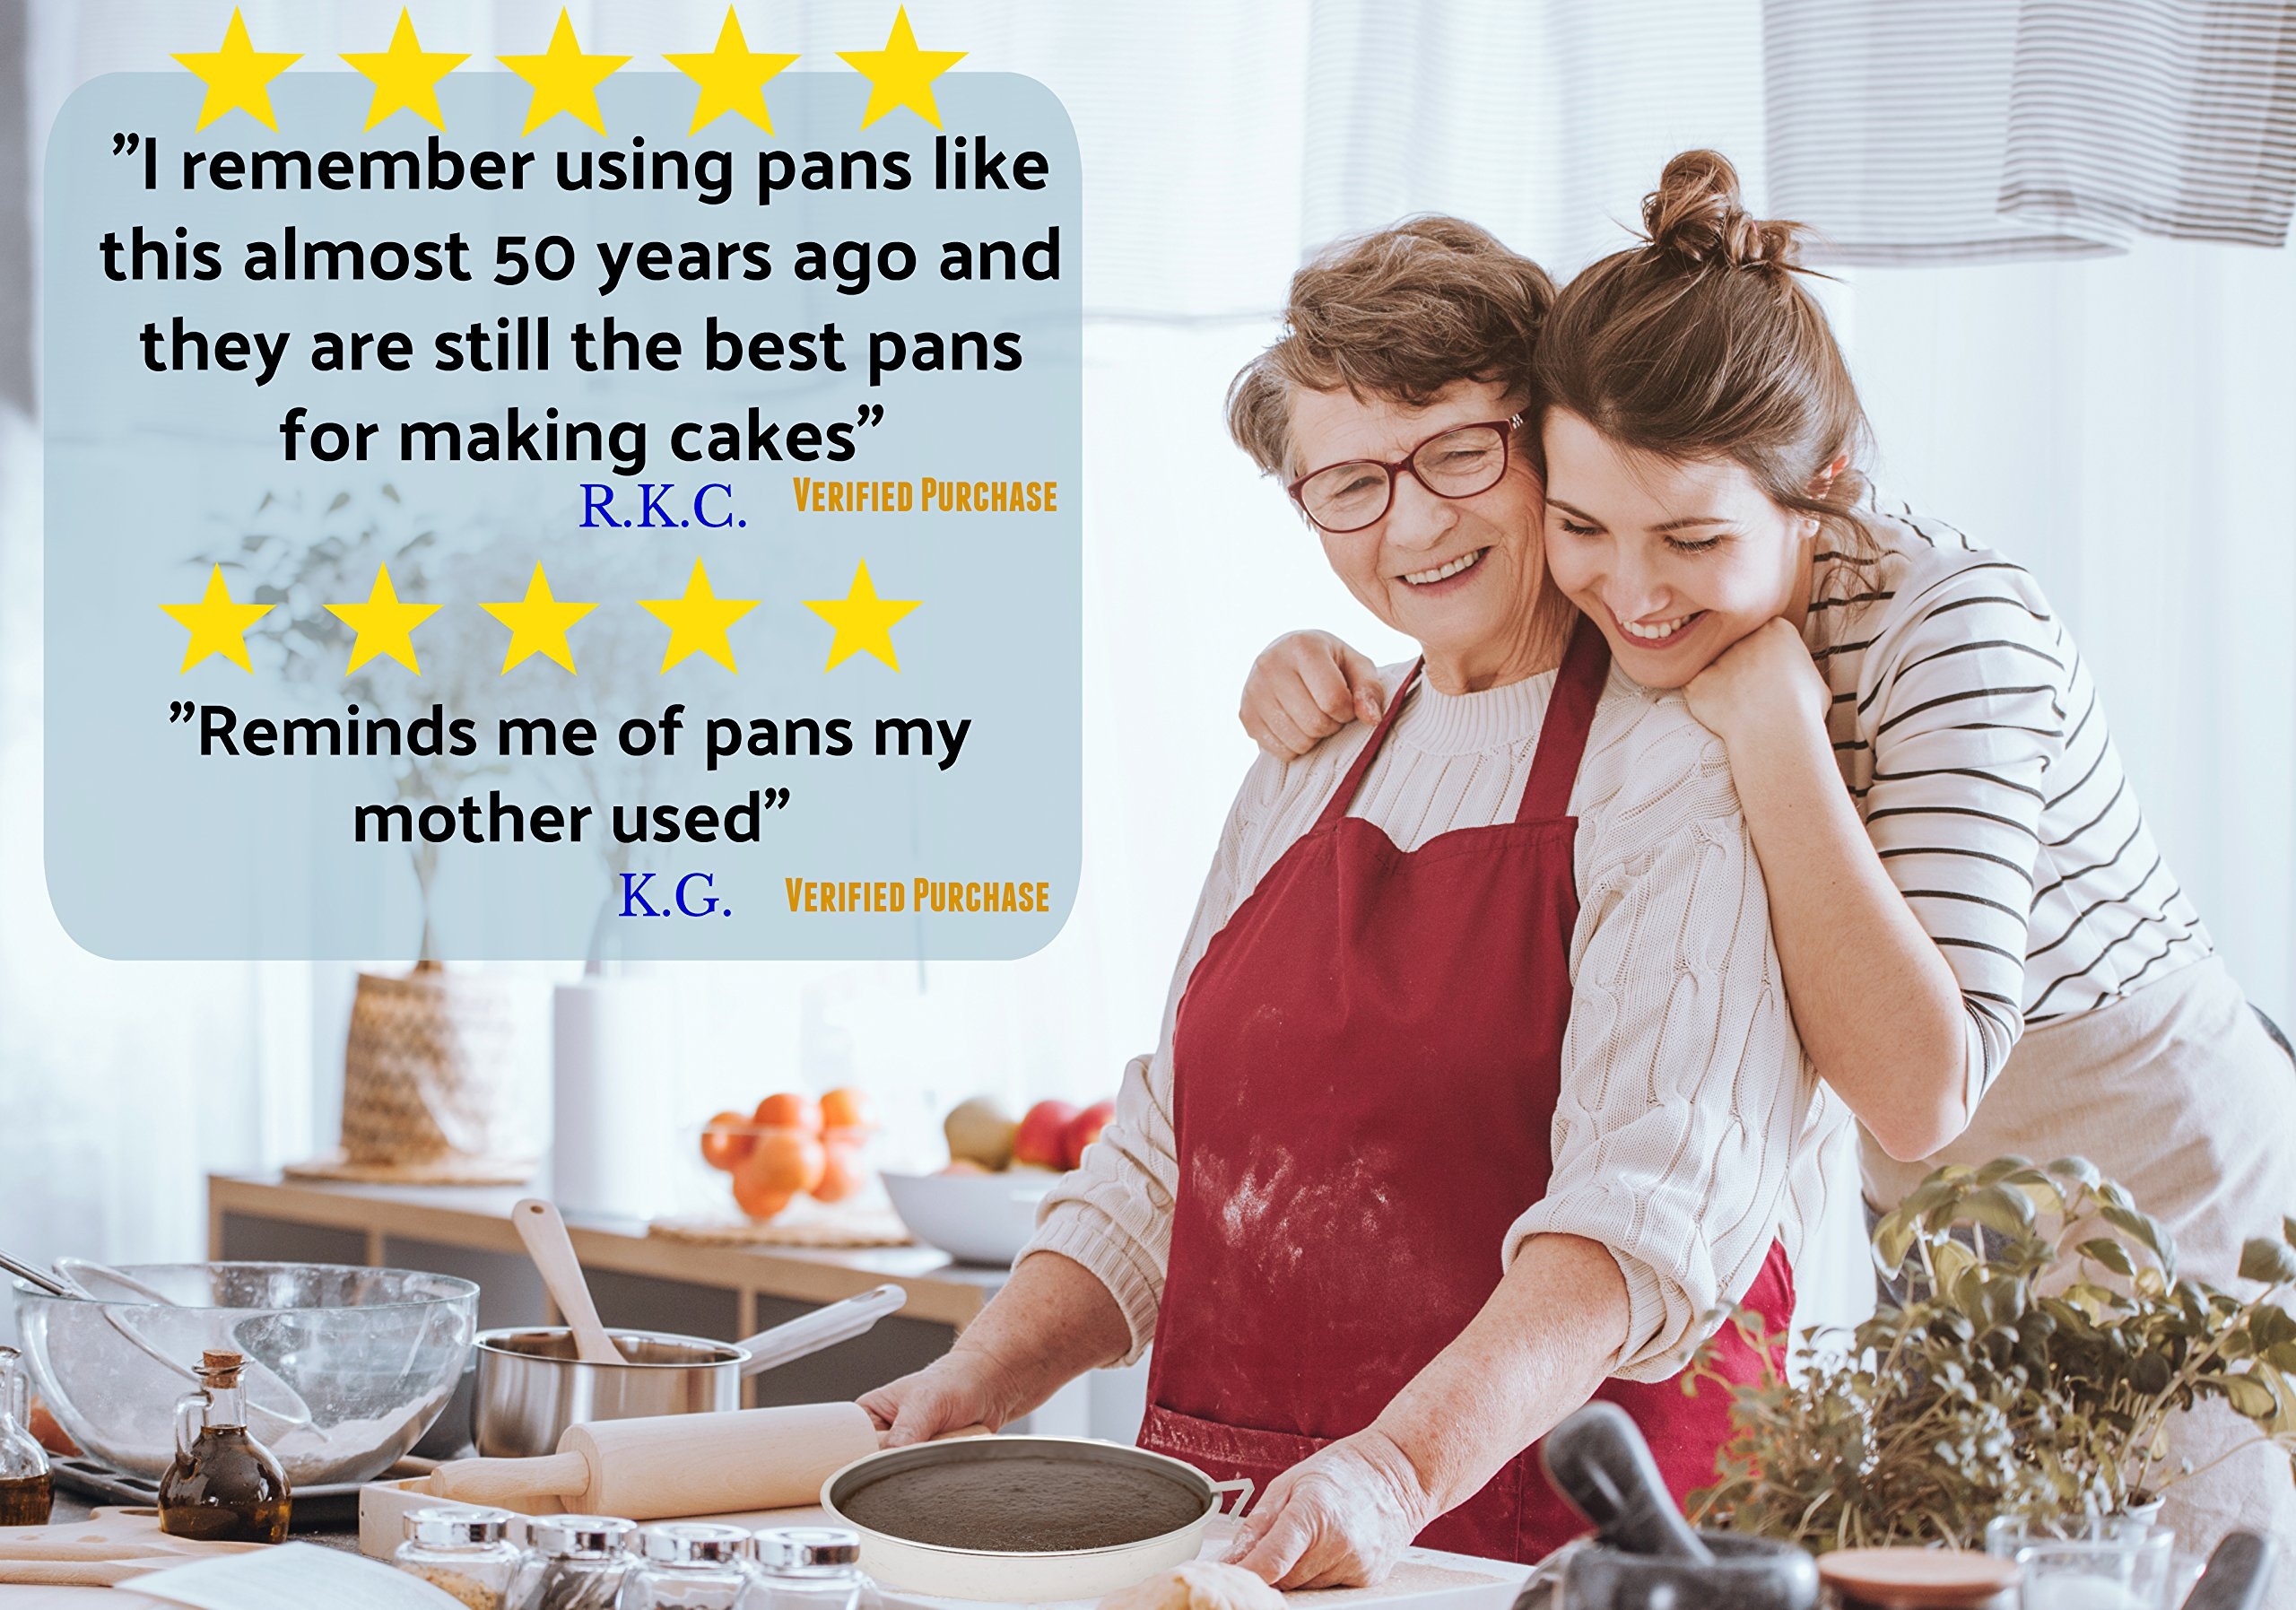 Aunt Shannon's Easy Release 8'' Cake Pans - Set of 3 Quick Release Pans for Easy Cake Removal Every Time by Aunt Shannon's Kitchen (Image #5)